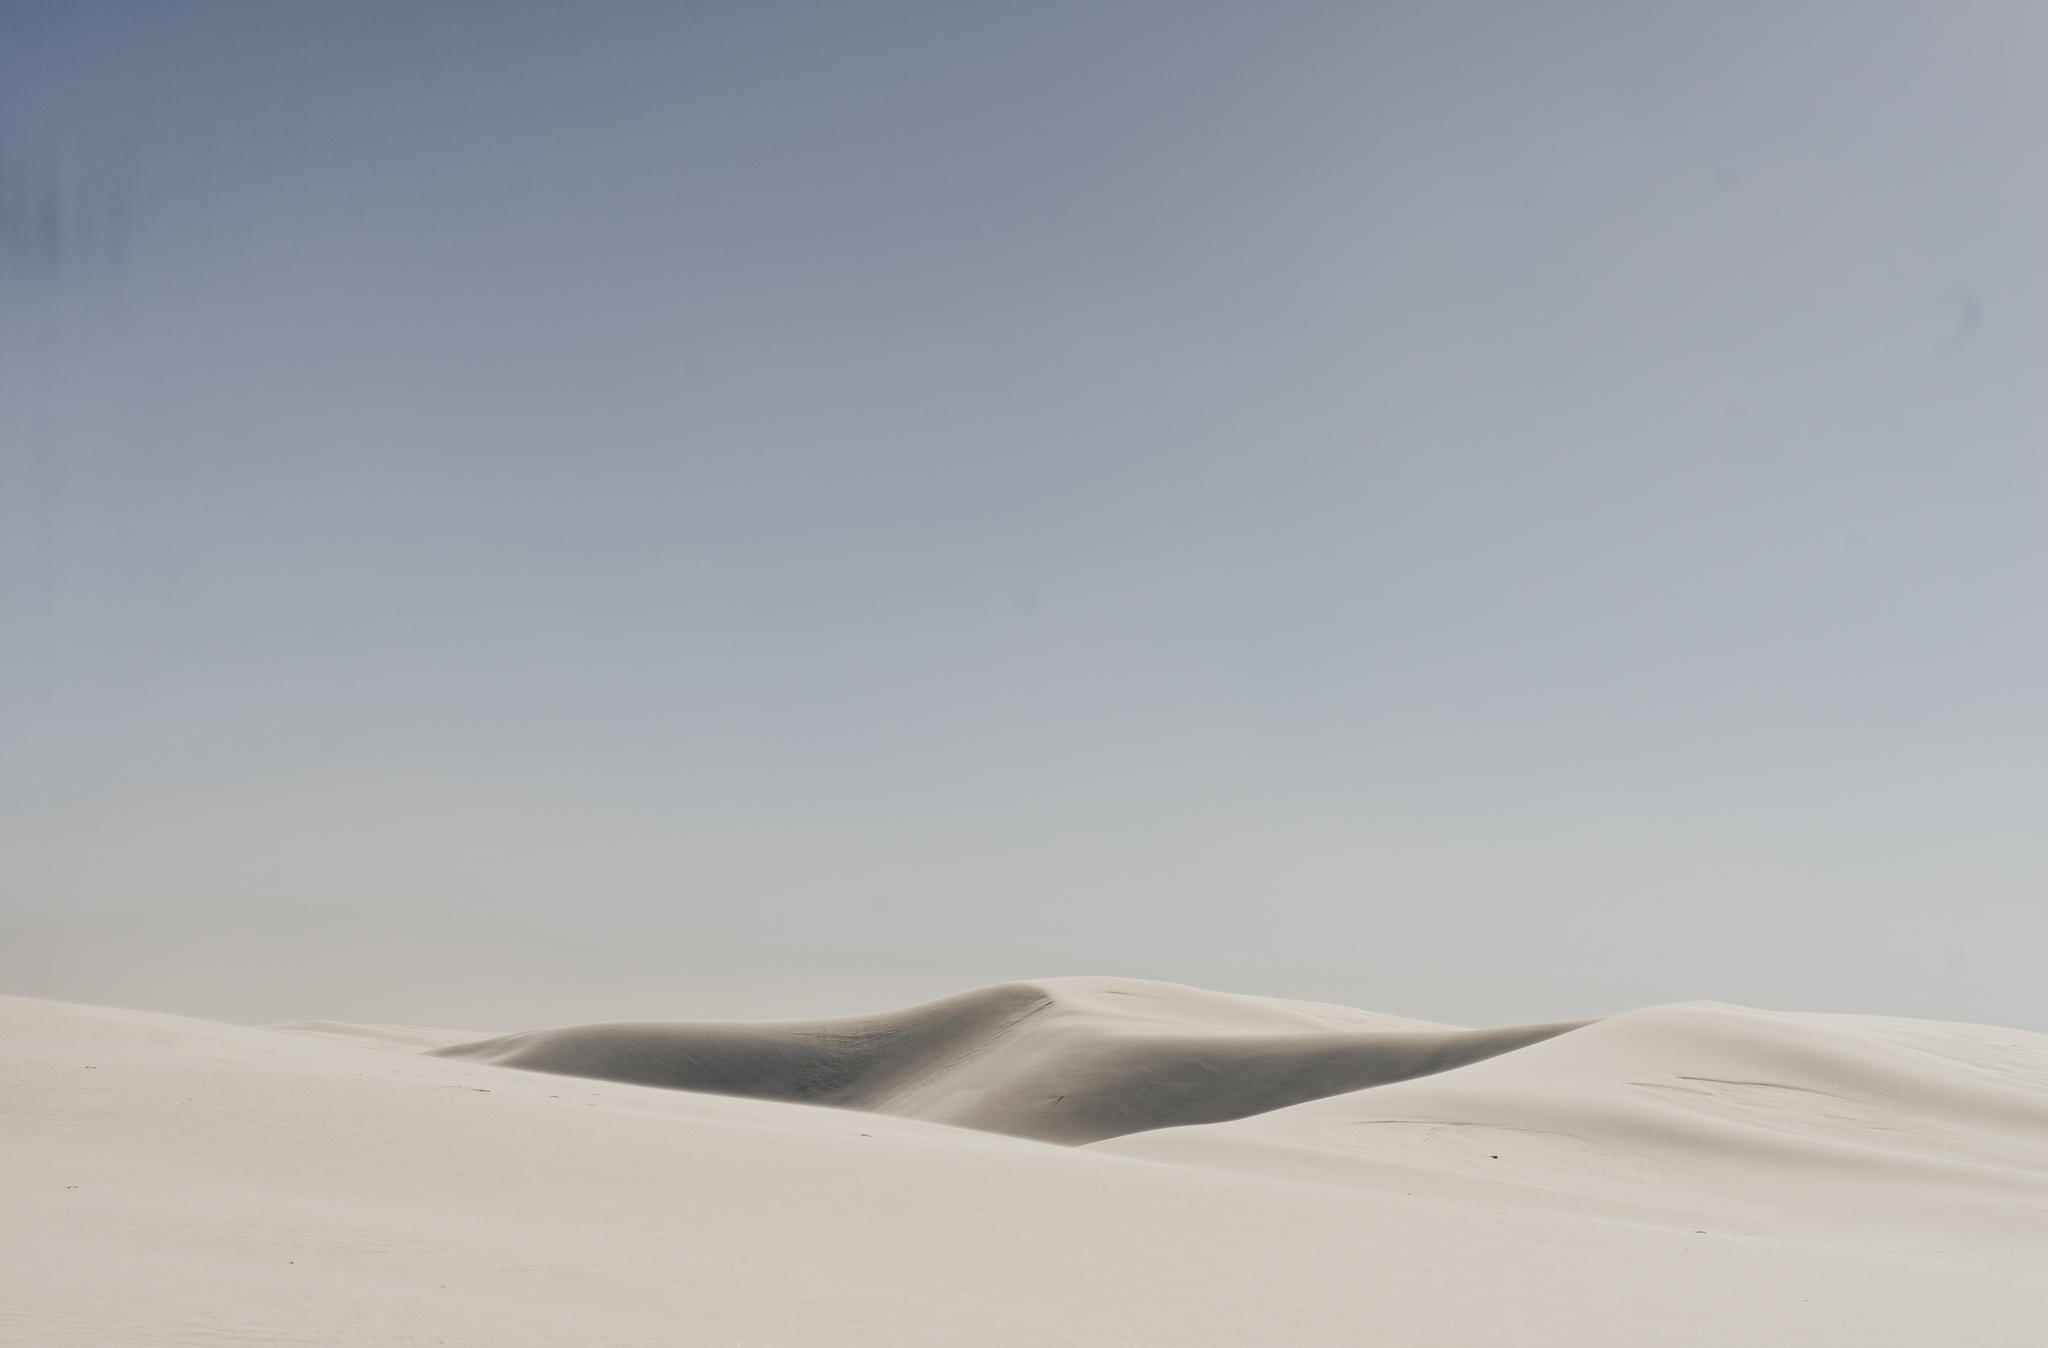 ©The-Ryans-Photography---White-Sands-National-Monument,-New-Mexico-Travel-021.jpg